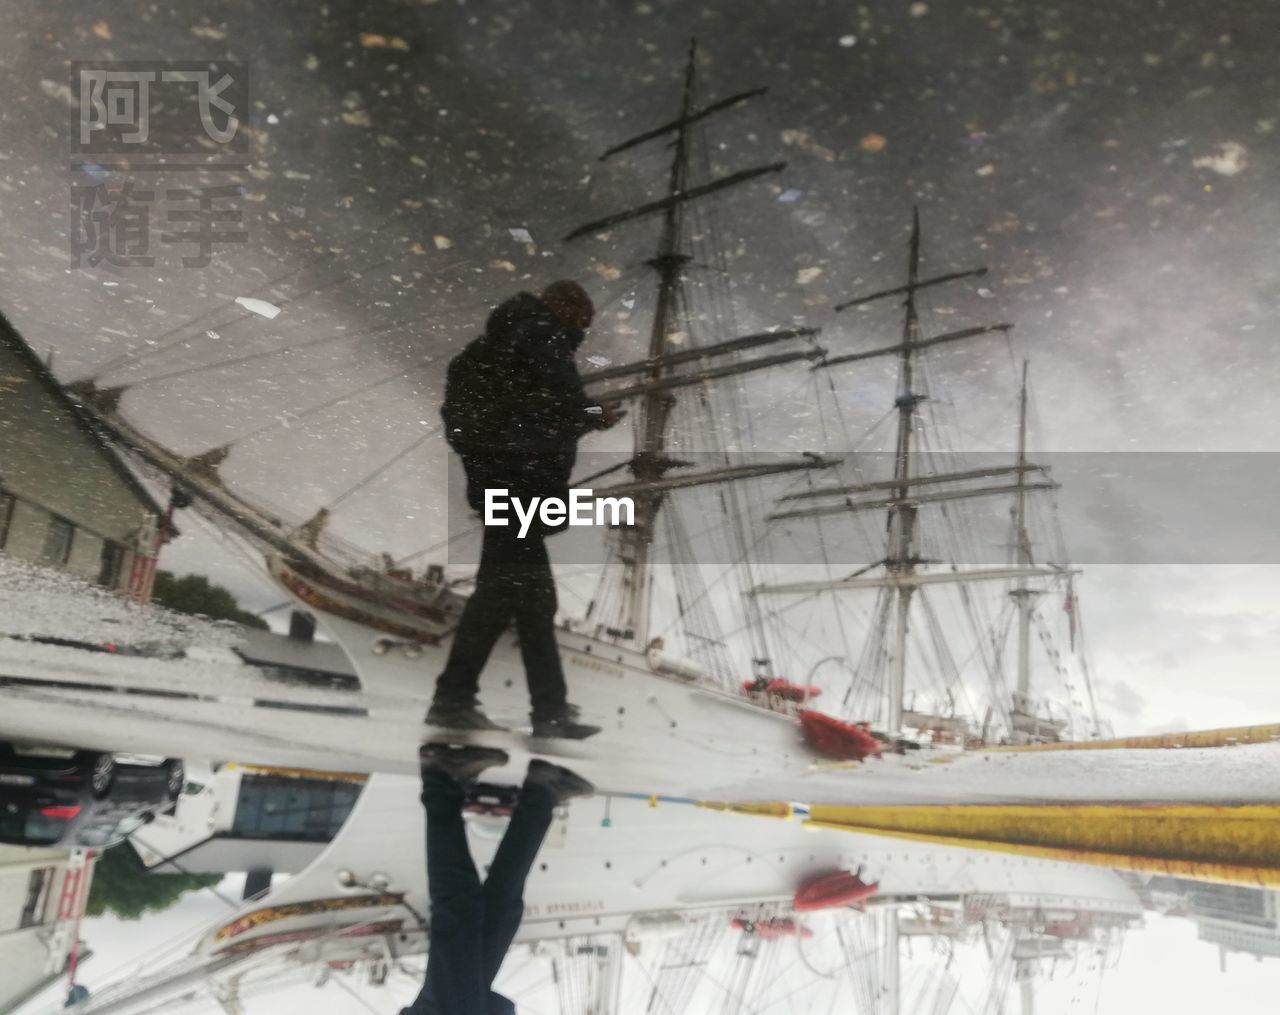 transportation, mode of transportation, nautical vessel, water, nature, one person, snow, real people, cold temperature, winter, travel, standing, full length, day, men, sky, outdoors, snowing, sailboat